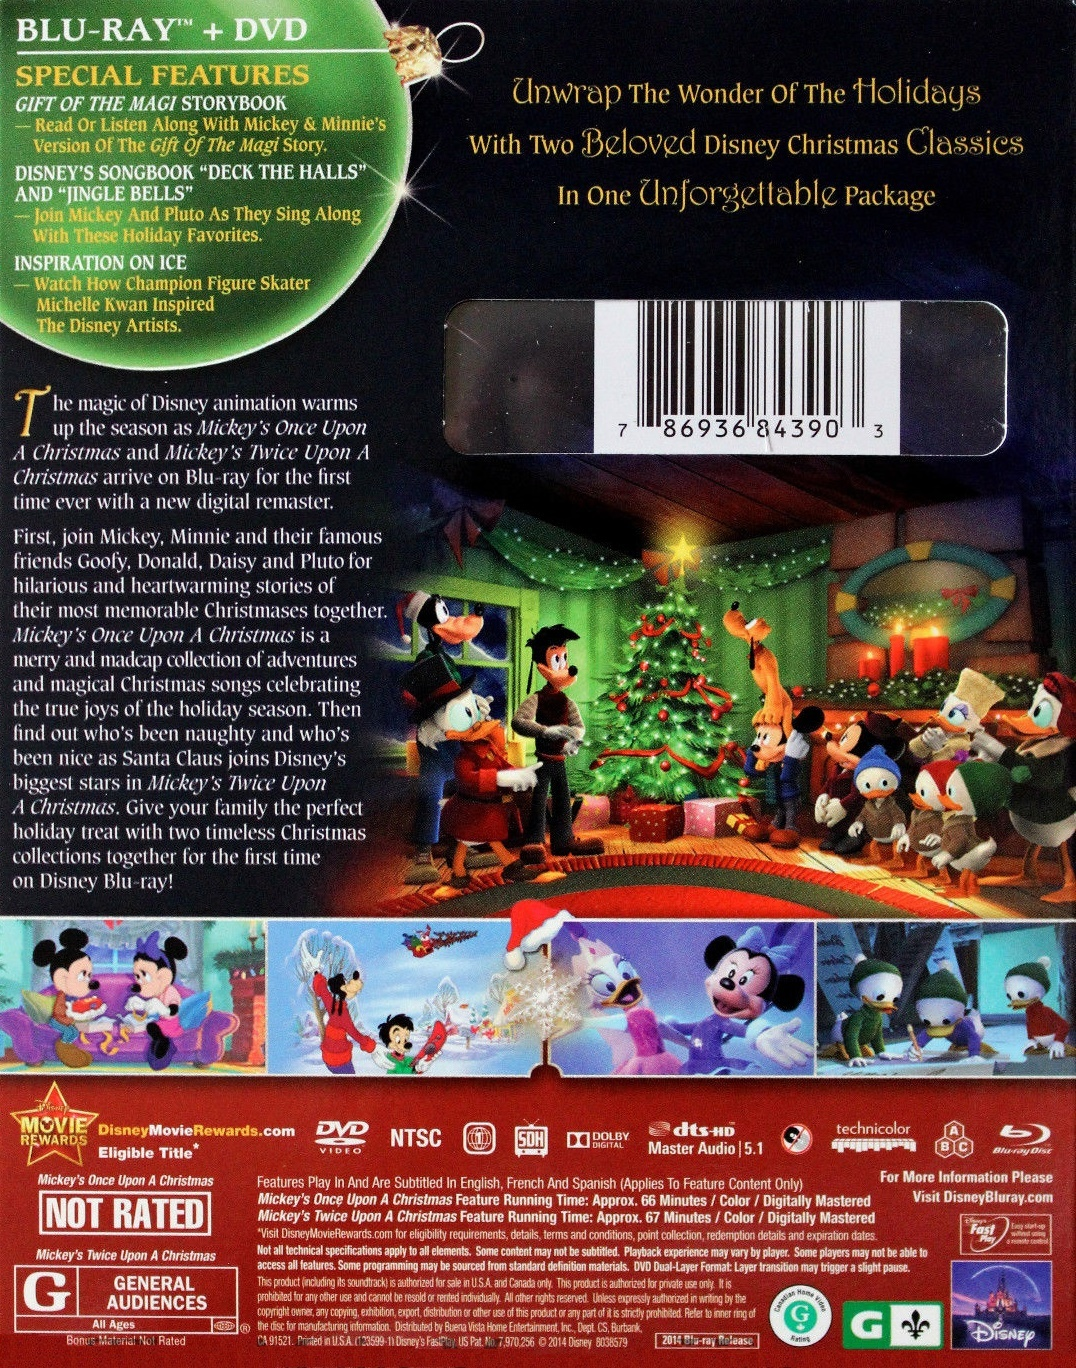 mickeys once upon a christmas twice upon a christmas blu ray 2 movie collection special edition - Mickeys Once Upon A Christmas Vhs